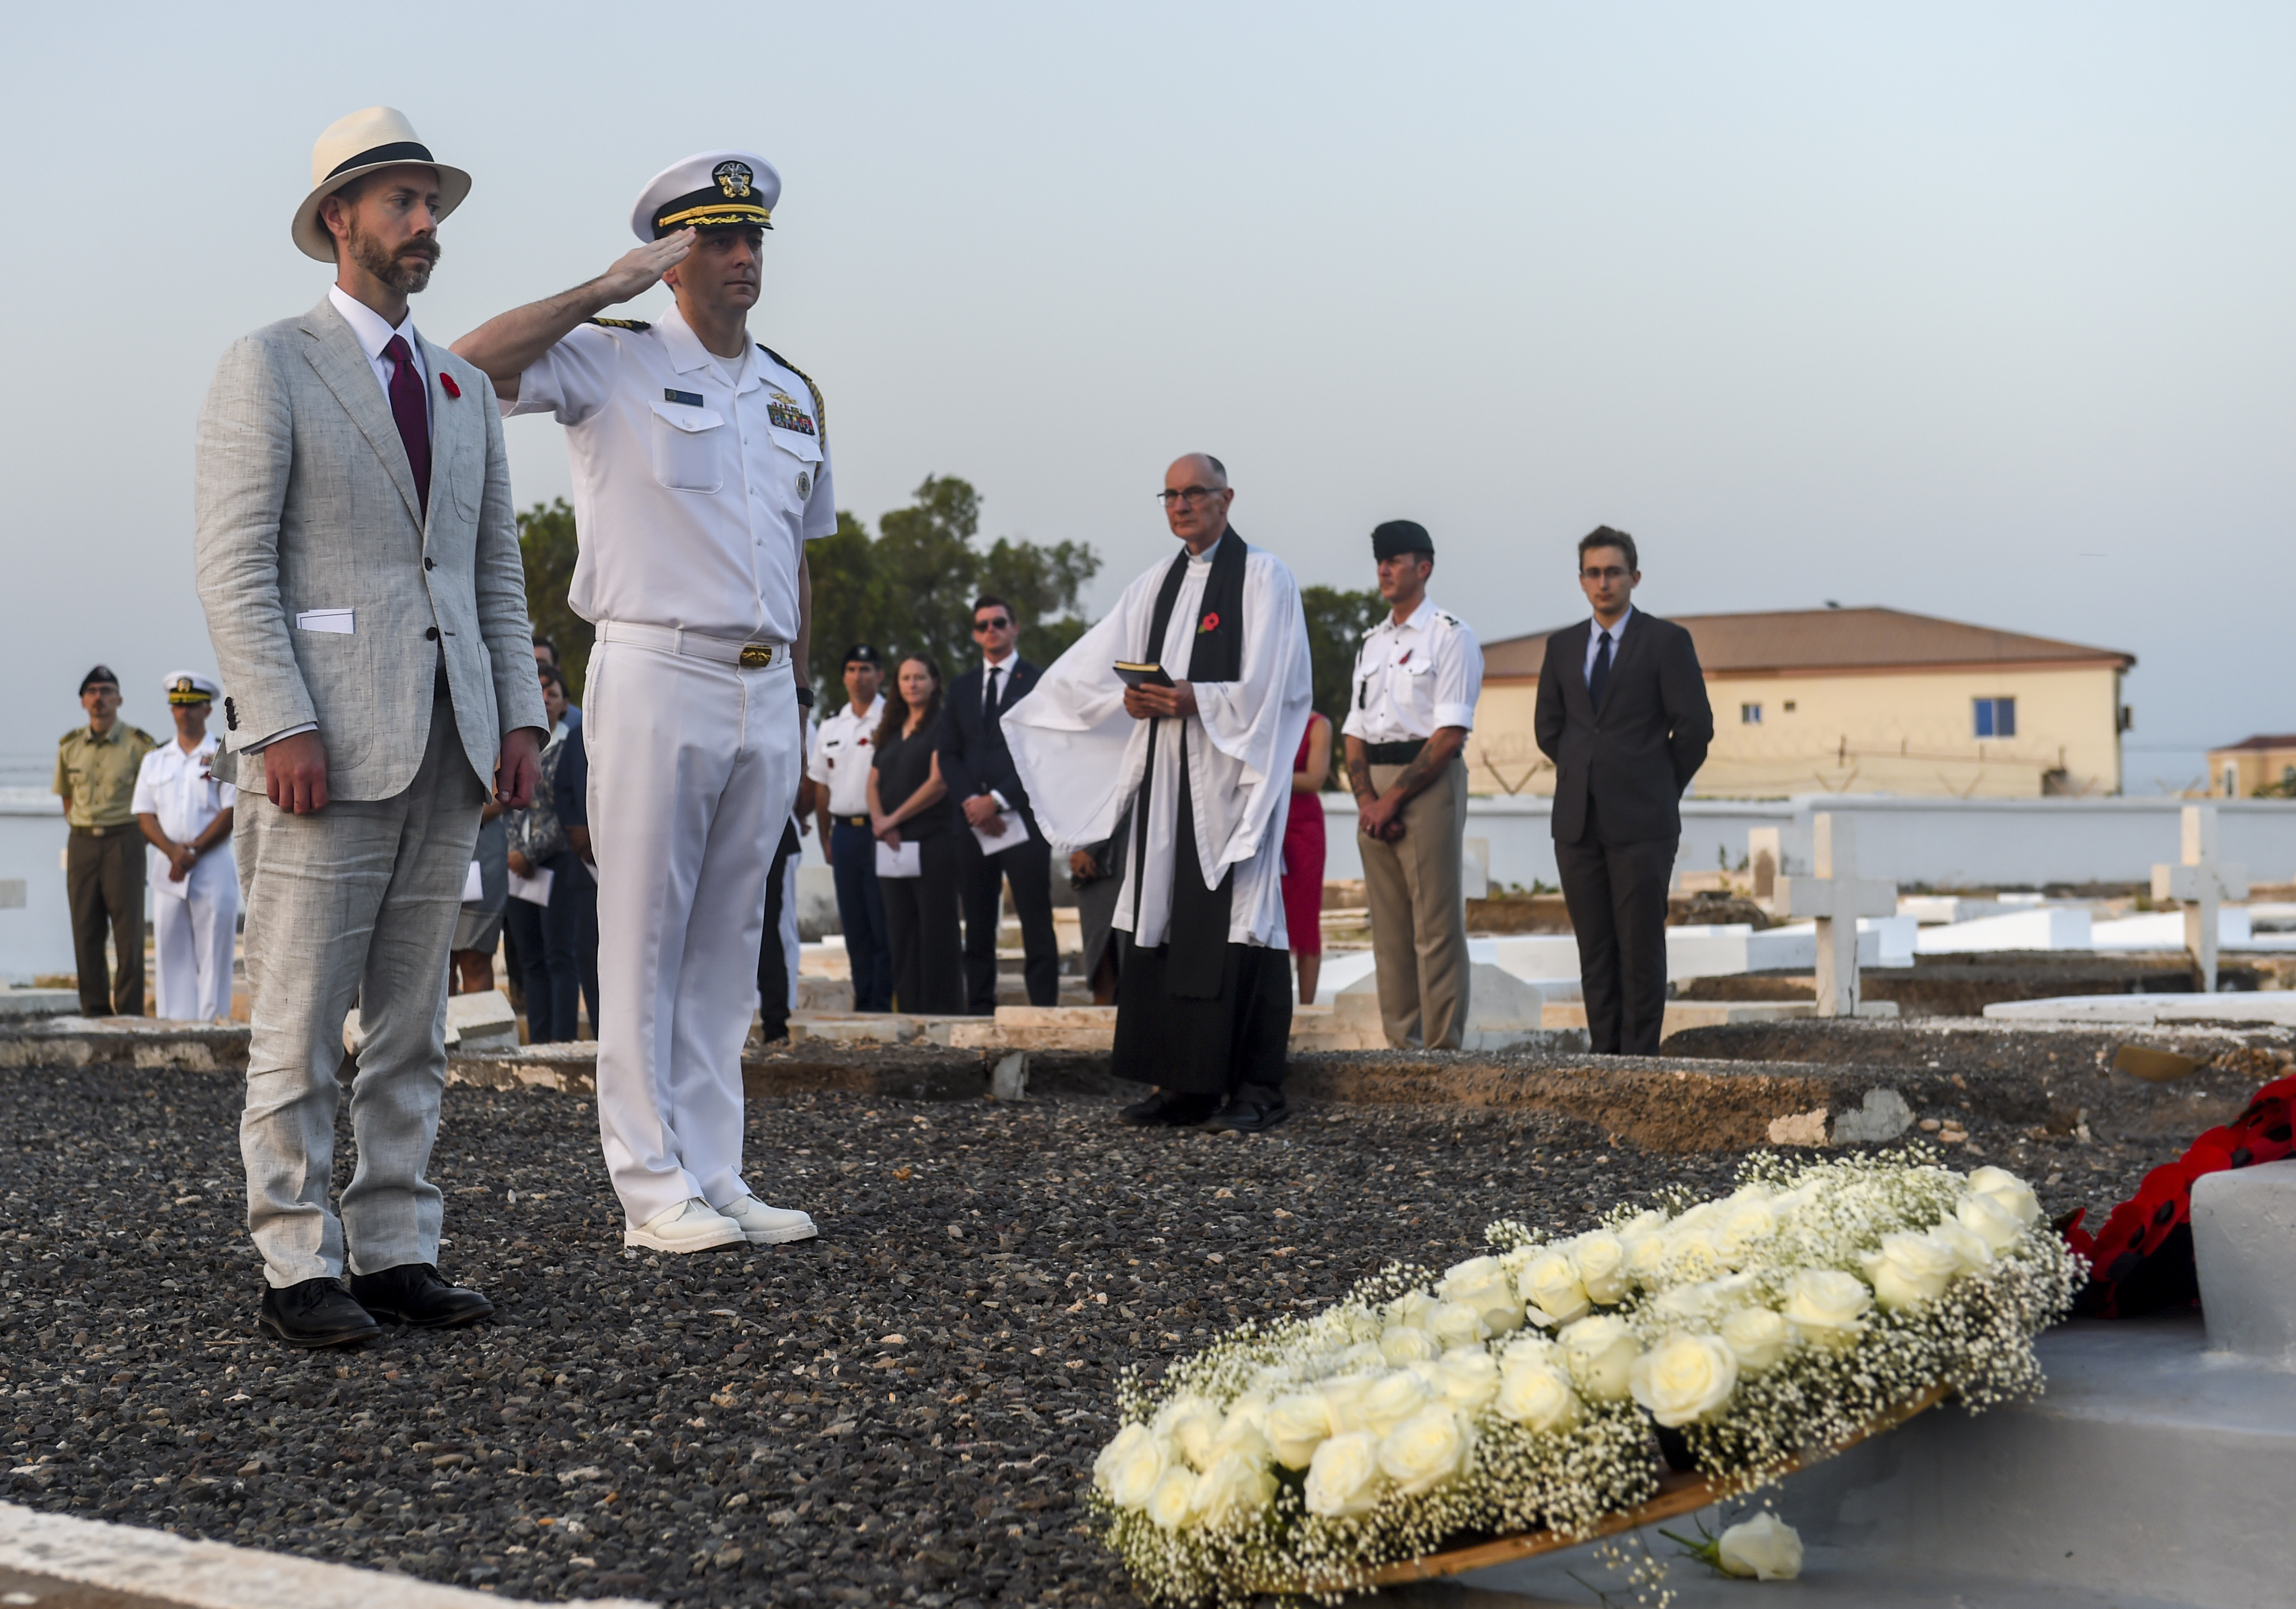 J. Alexander Hamilton (left), Deputy Chief of Mission of U.S. Embassy to the Republic of Djibouti, and U.S. Navy Capt. John Tully, senior defense official and defense attaché, pay their respects during a Remembrance Day ceremony at the Djibouti New European Cemetery near Camp Lemonnier, Djibouti, Nov. 7, 2017. Service members from Combined Joint Task Force - Horn of Africa joined other representatives of the United States, the United Kingdom, Russia, the Commonwealth, and the European Union as they honored service members who gave their lives during wartime. (U.S. Air Force photo by Staff Sgt. Timothy Moore)